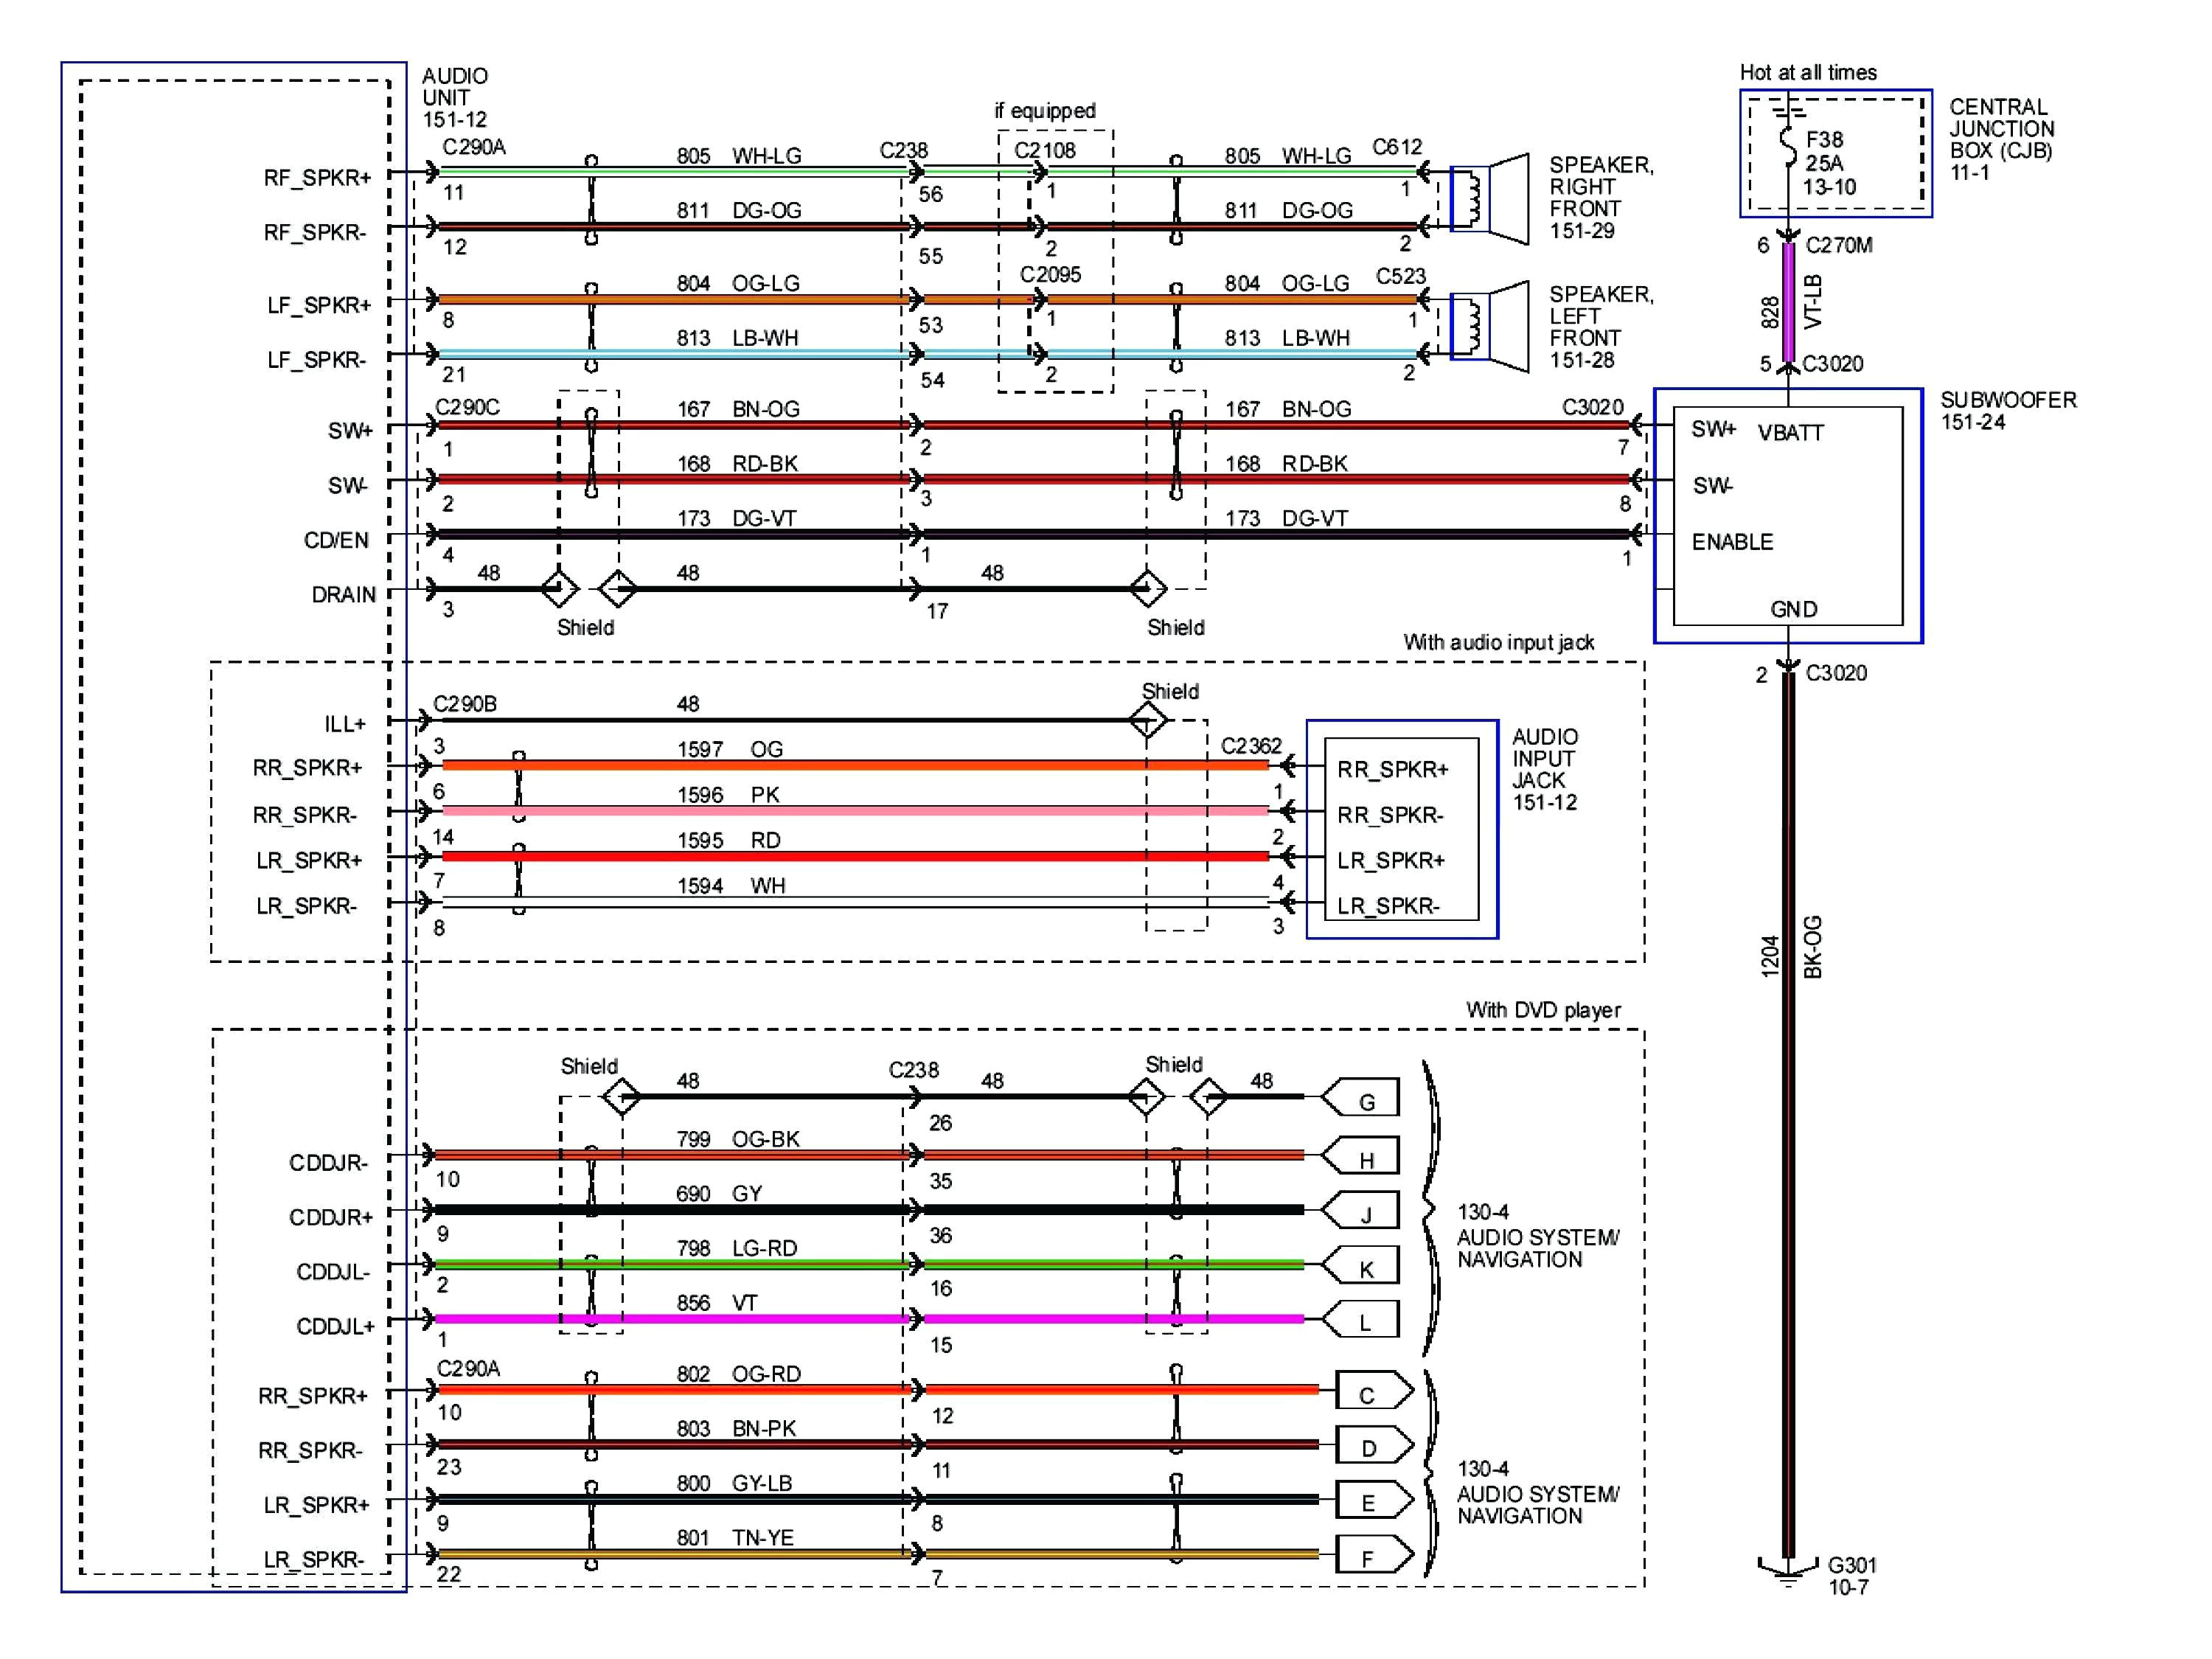 2005 ford f 150 stereo wiring diagram wiring diagram expert 2005 ford f150 stereo wiring diagram 2005 f150 stereo wiring diagram